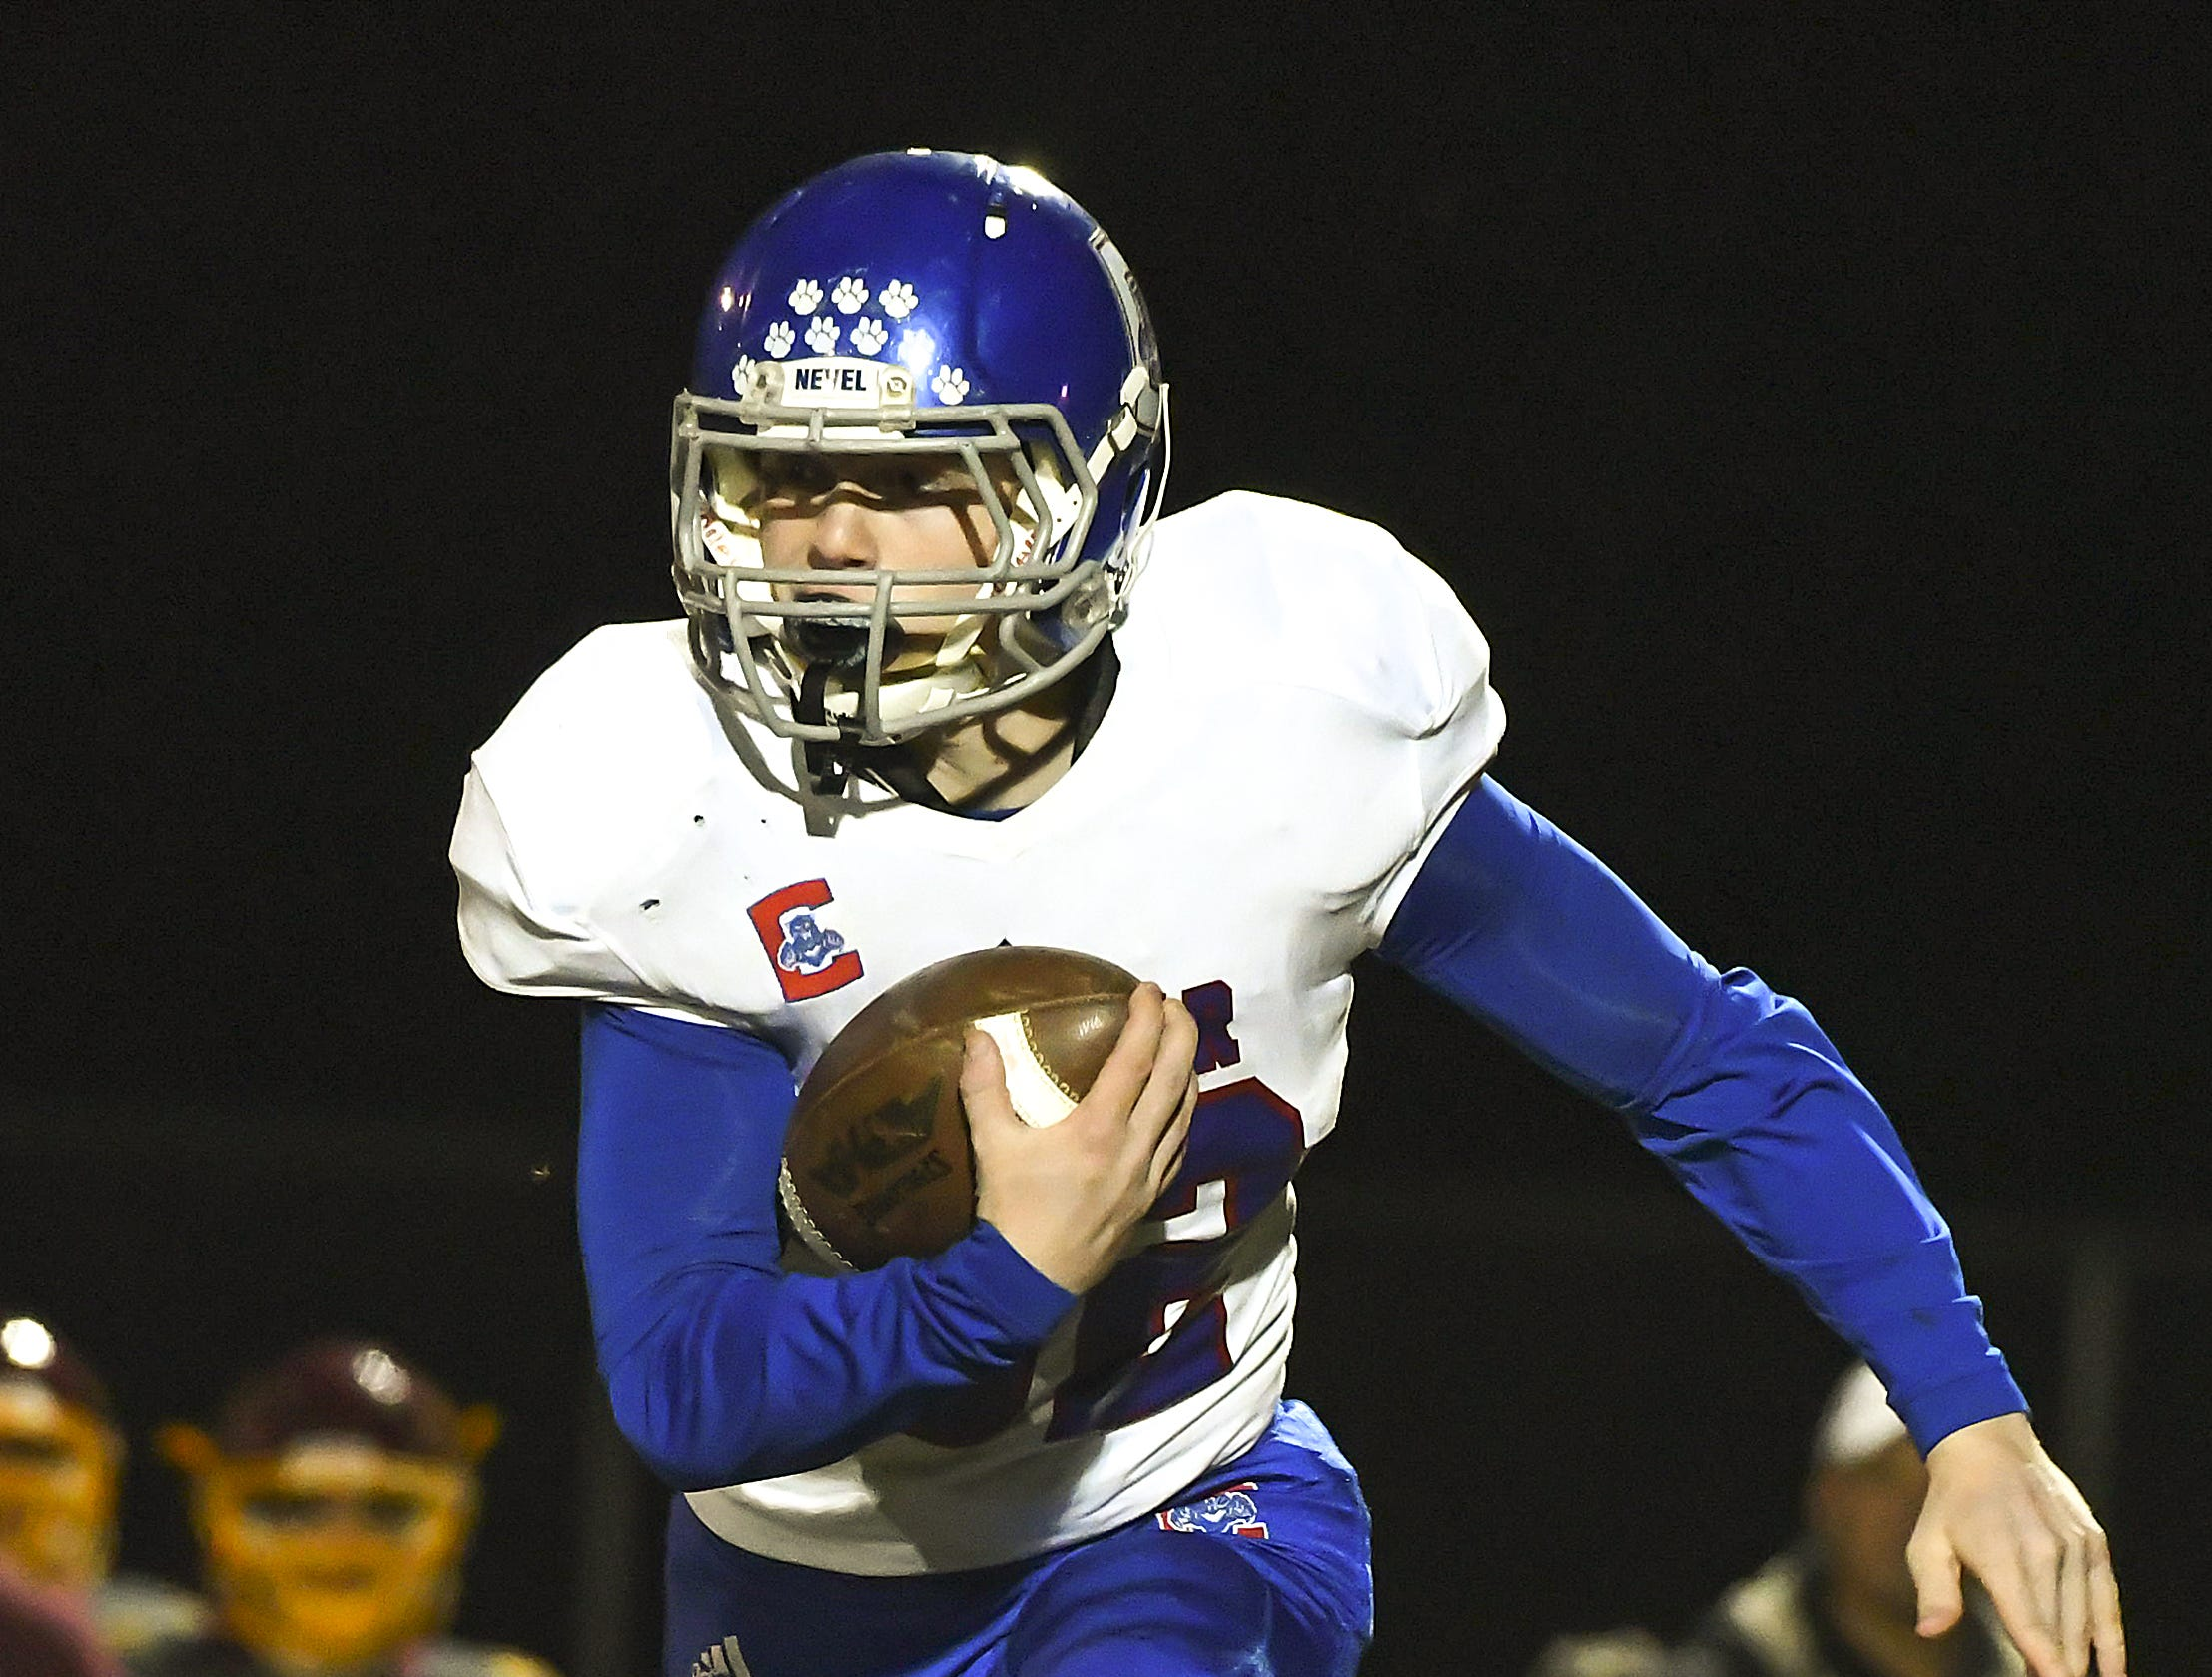 Douglas Abdon of Conner runs the football against Cooper in the Skyline Chili Crosstown Showdown at Cooper High School, Union, KY, Friday Oct. 19, 2018